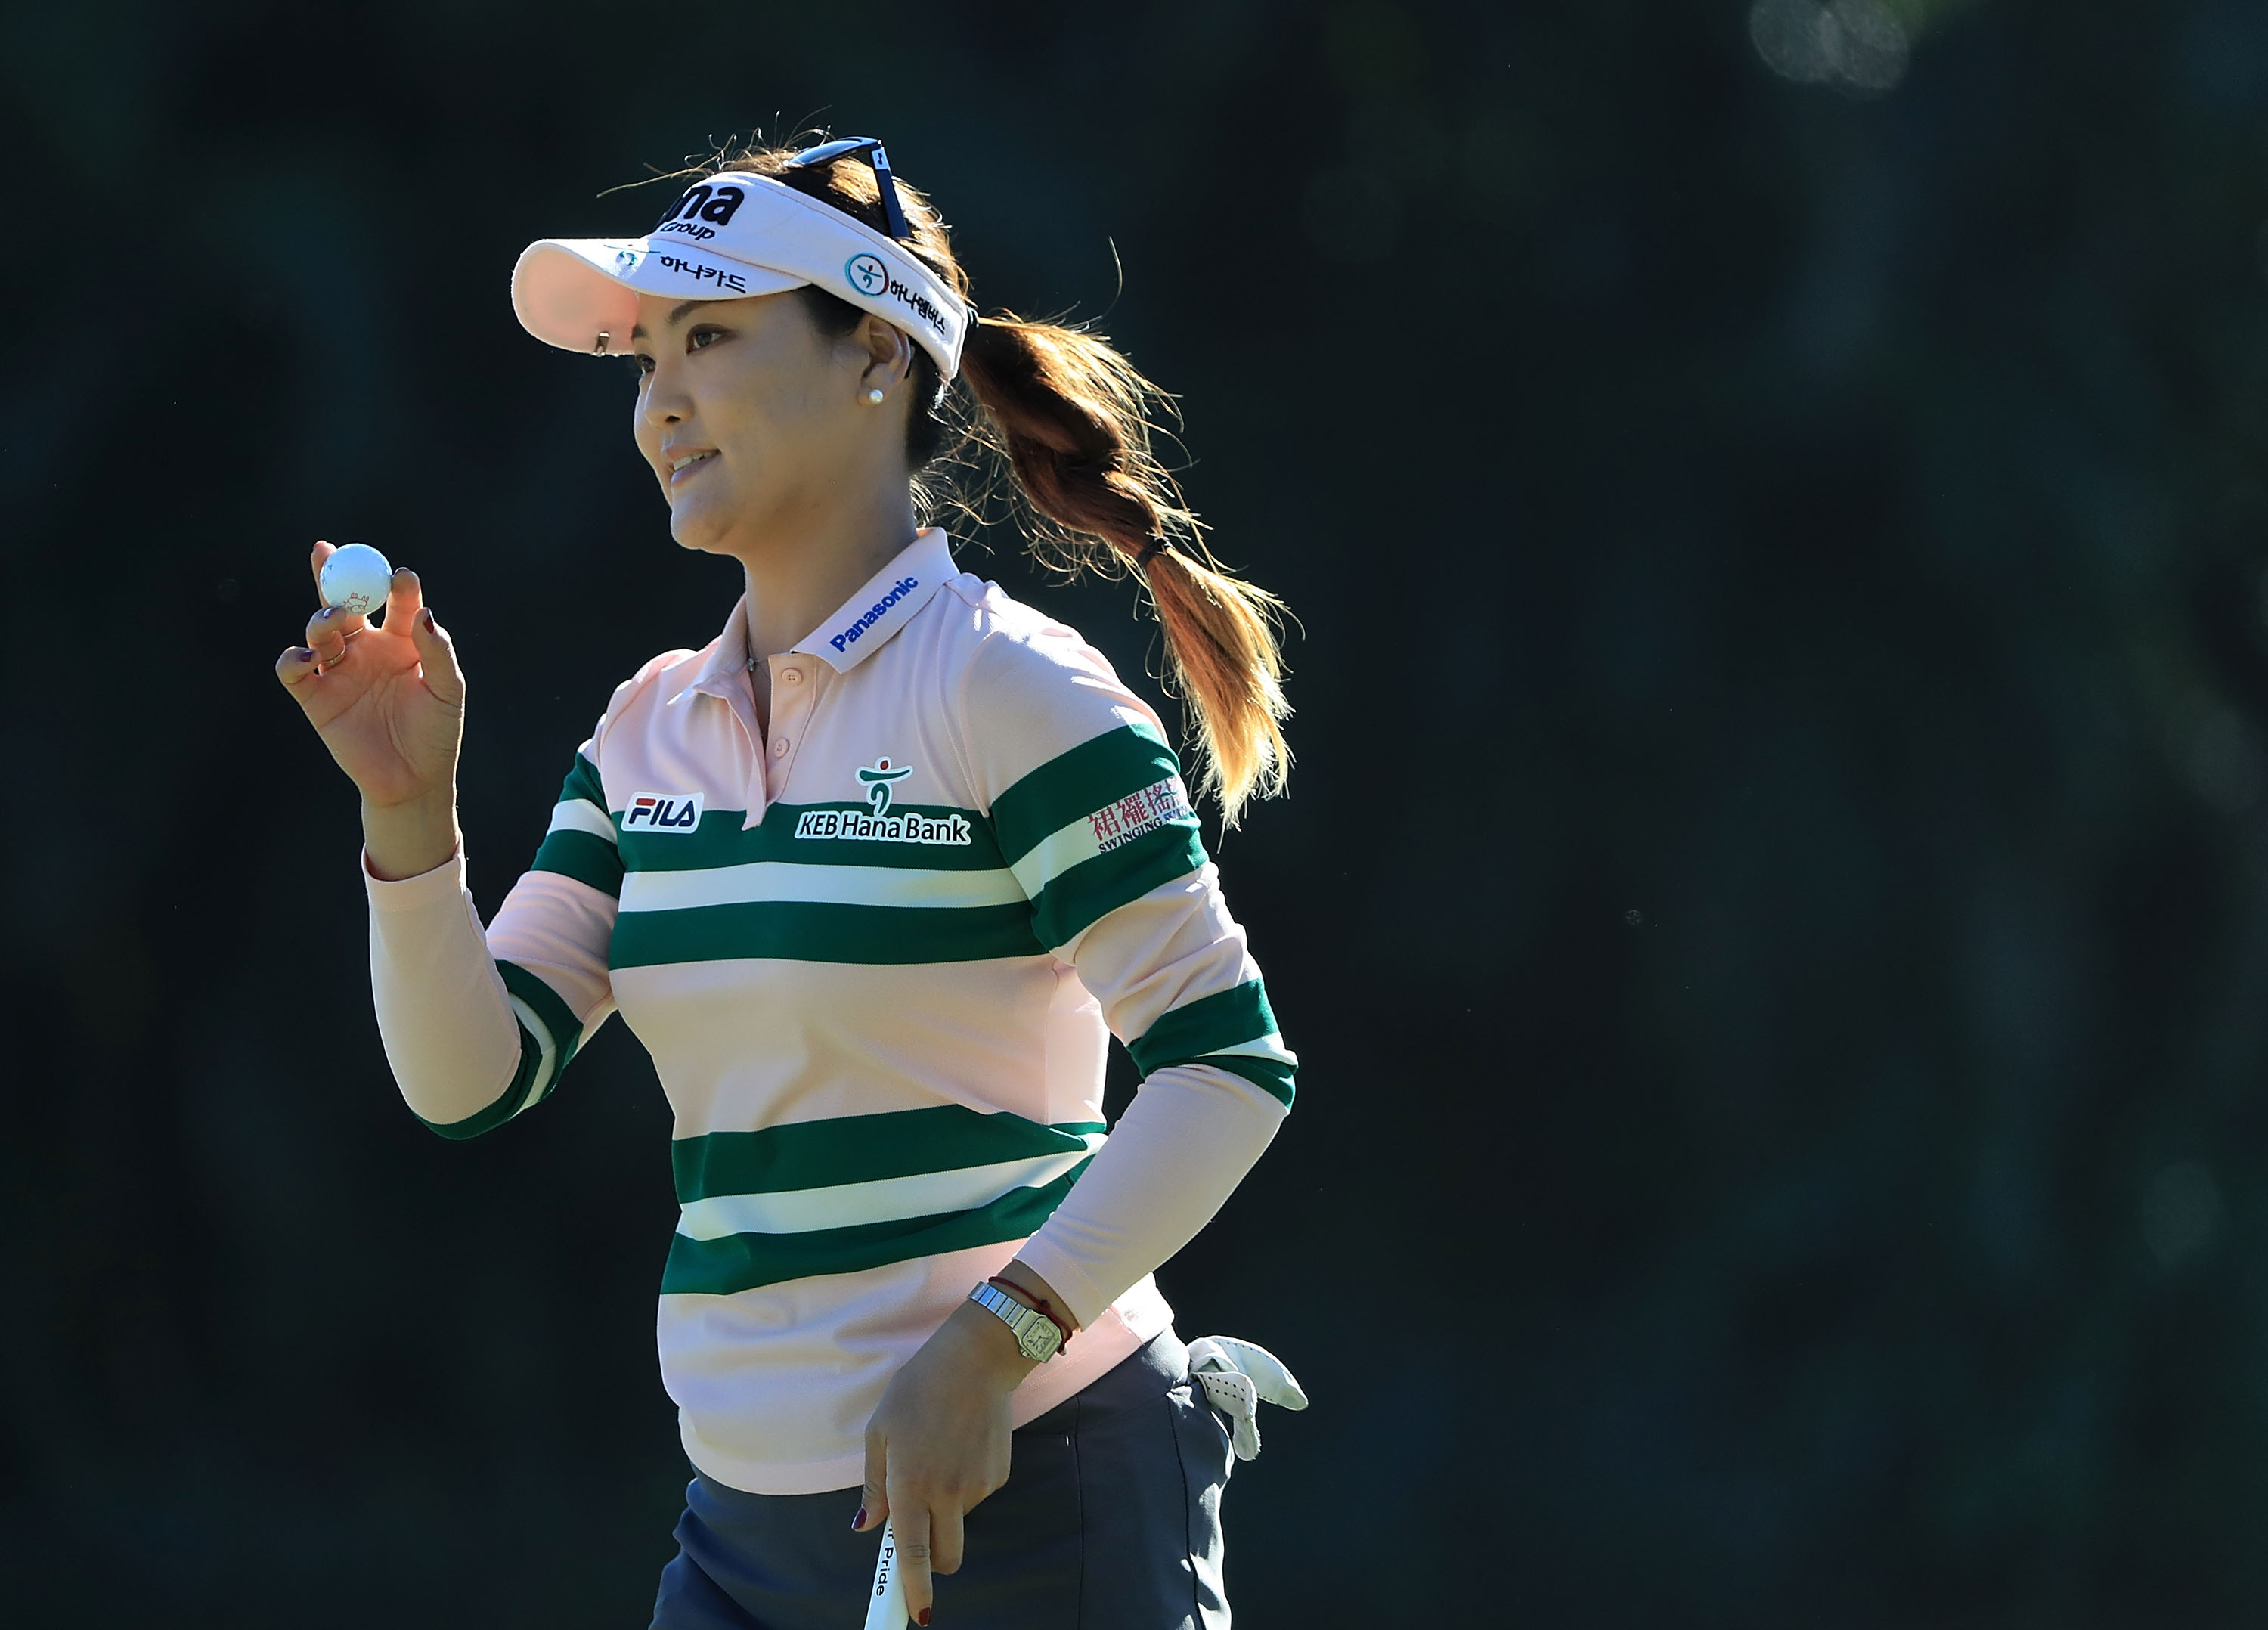 NAPLES, FL - NOVEMBER 20: So Yeon Ryu of South Korea reacts to her putt during the final round of the CME Group Tour Championship at Tiburon Golf Club on November 20, 2016 in Naples, Florida. (Photo by Sam Greenwood/Getty Images)